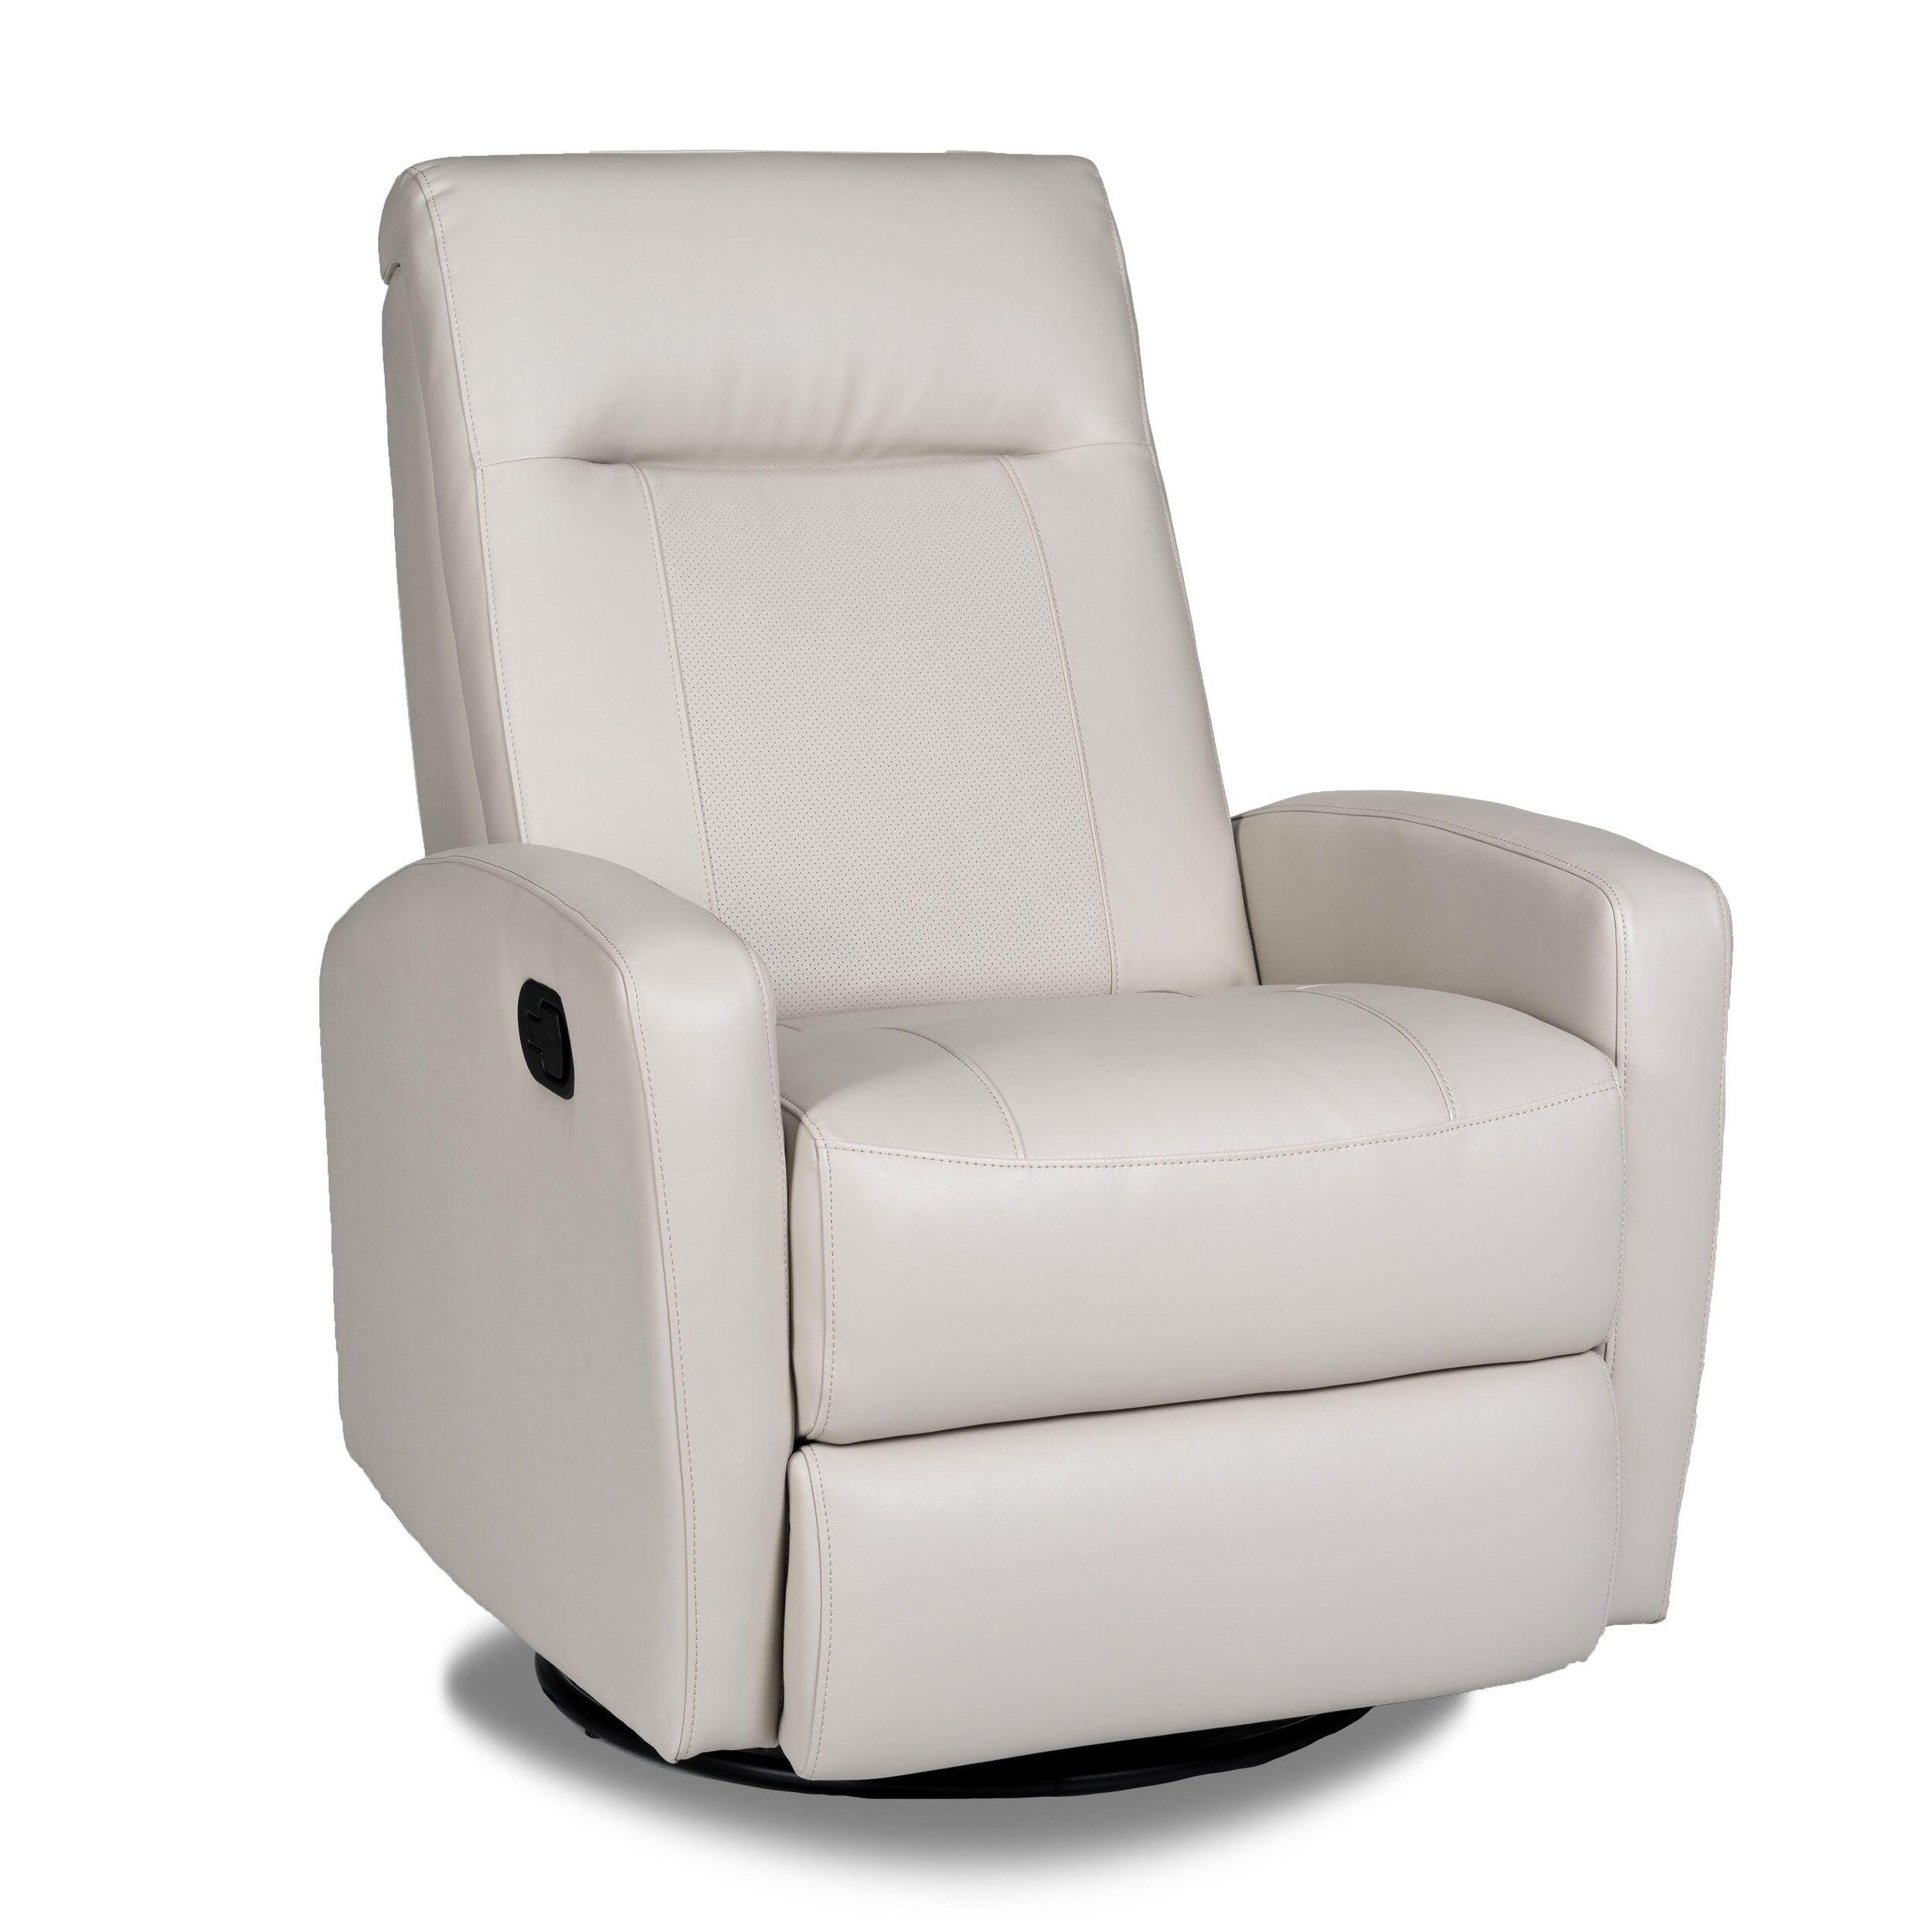 Opulence Home Stefan Swivel Glider Recliner Reviews